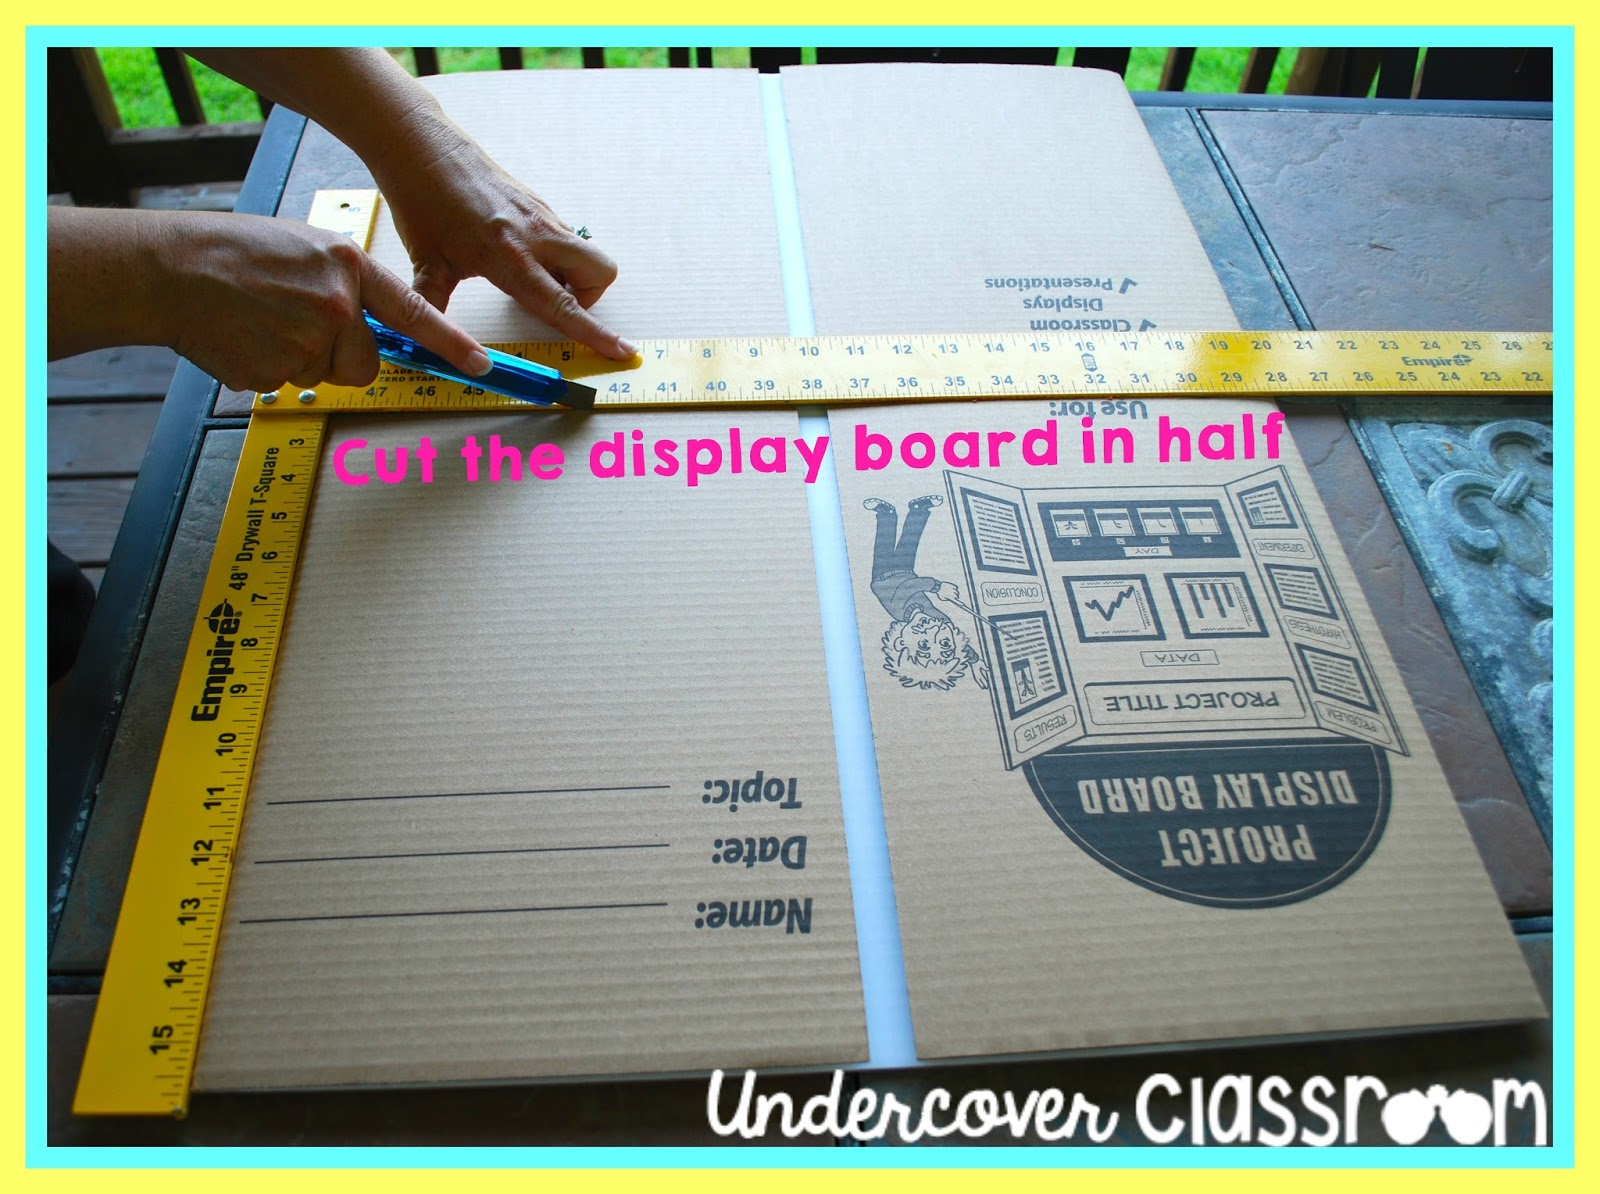 Undercover classroom do it yourself privacy folders solutioingenieria Choice Image